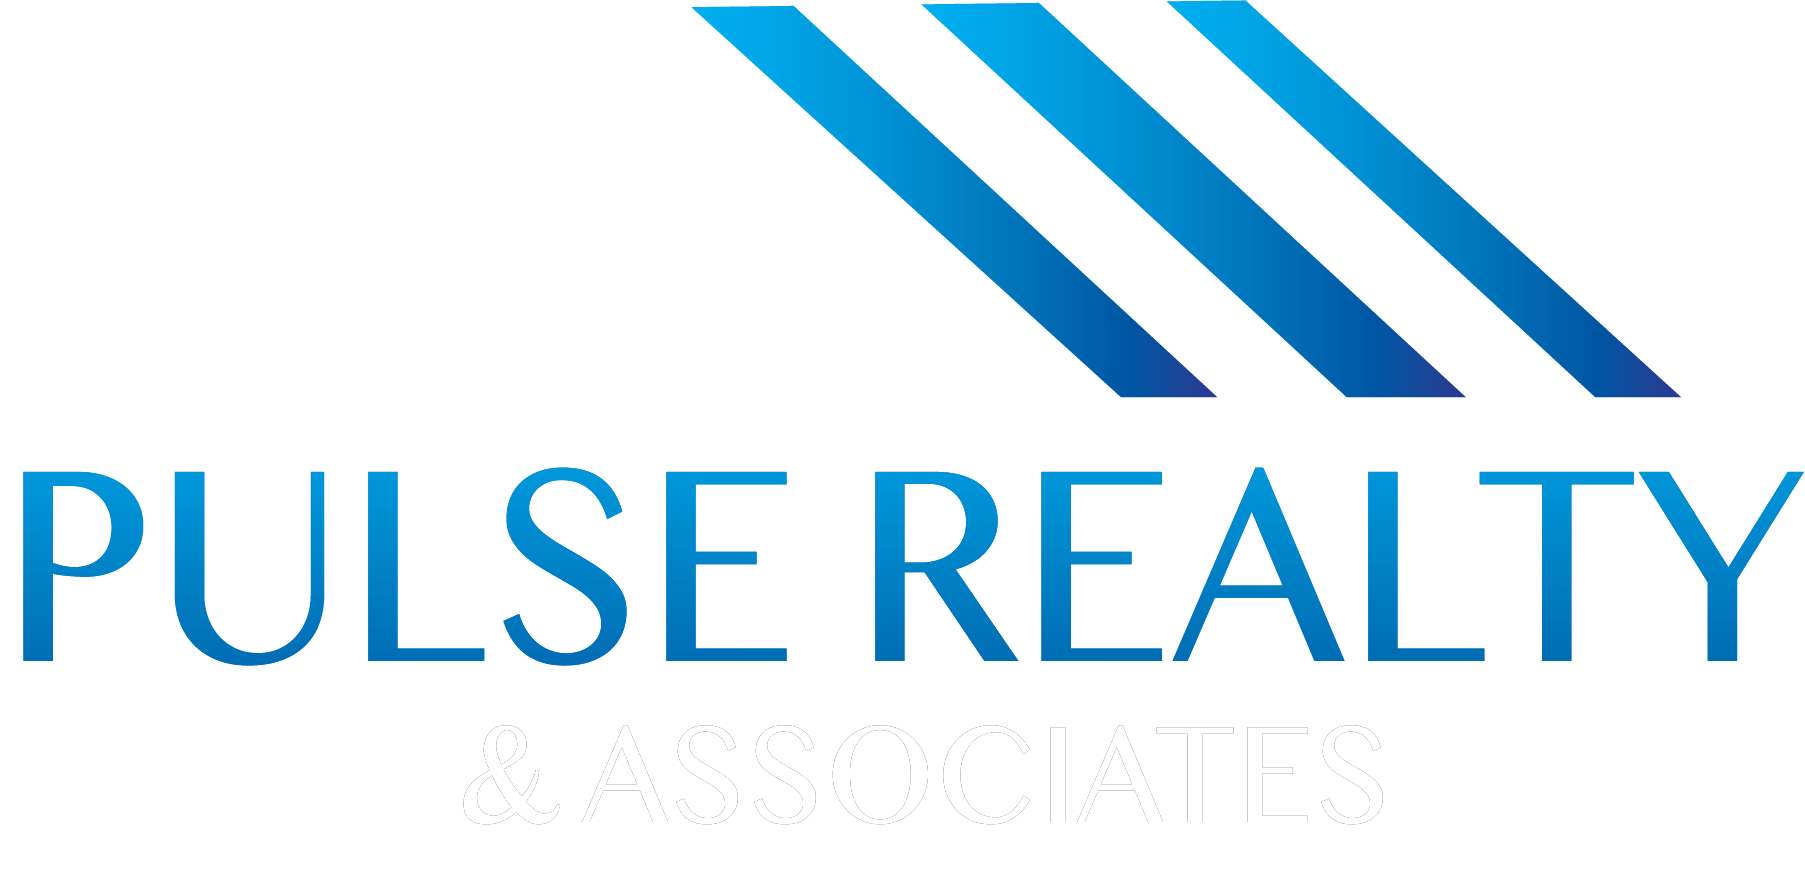 Pulse Realty Associates Logo white.png